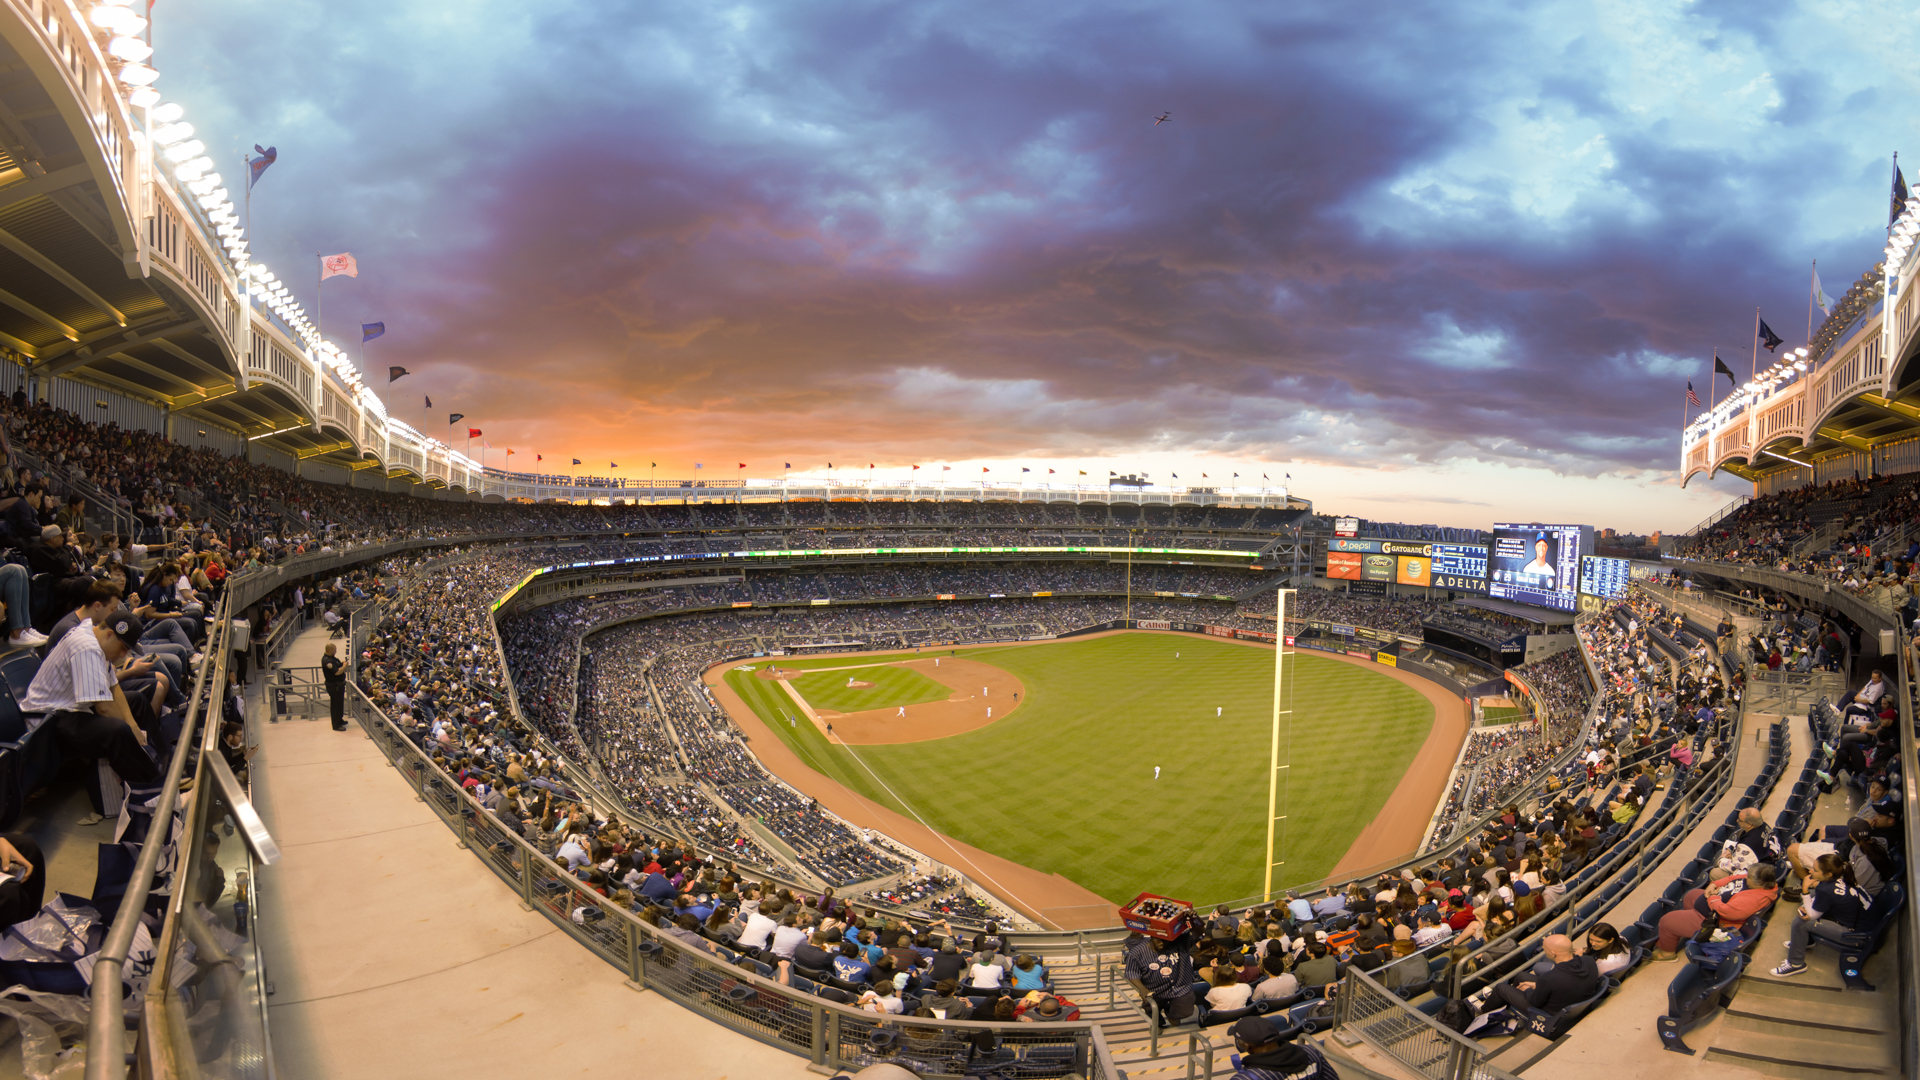 Great Panorama Photograph Inside A Packed Yankee Stadium